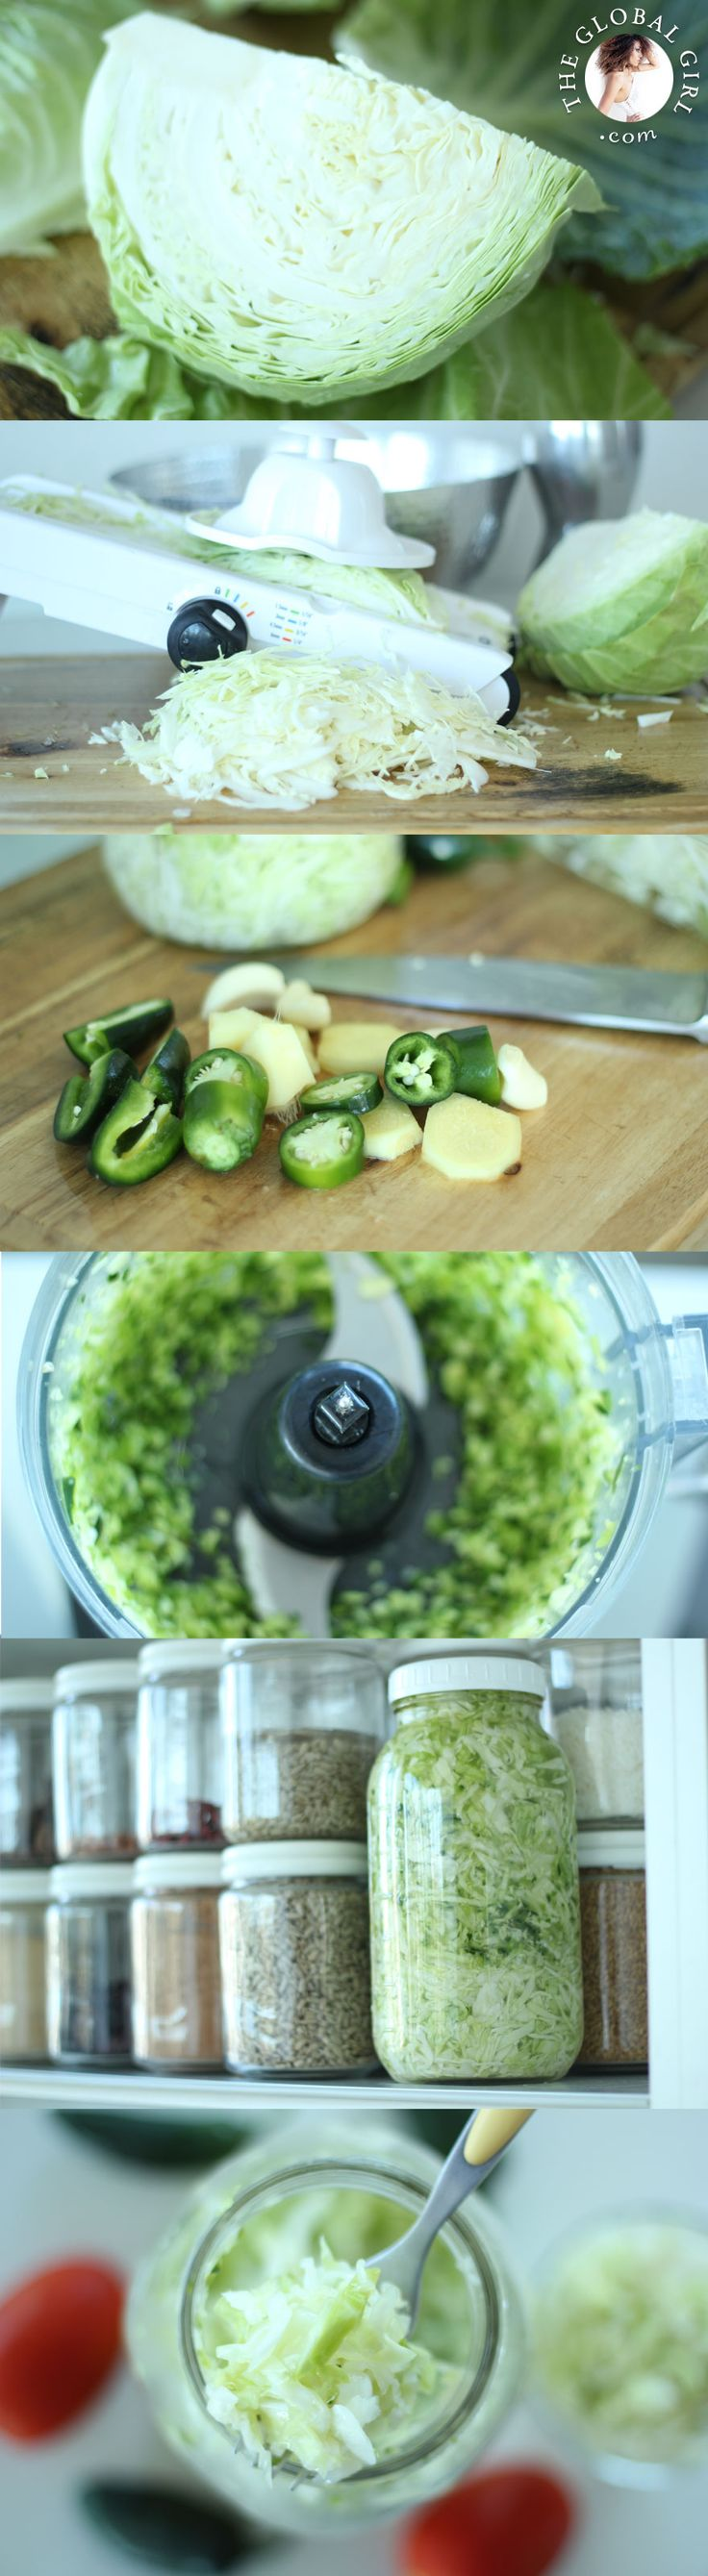 The Global Girl Raw Recipes: Ndoema shares her classic spicy sauerkraut. Combine the powerful detox-friendly properties of cruciferous veggies with the healing properties of probiotics and you've got a health and beauty powerhouse. http://theglobalgirl.com/sauerkraut-lacto-fermented-cabbage-raw-vegan-recipe-probotics-cultured-side-dish-healthy-appetizer/